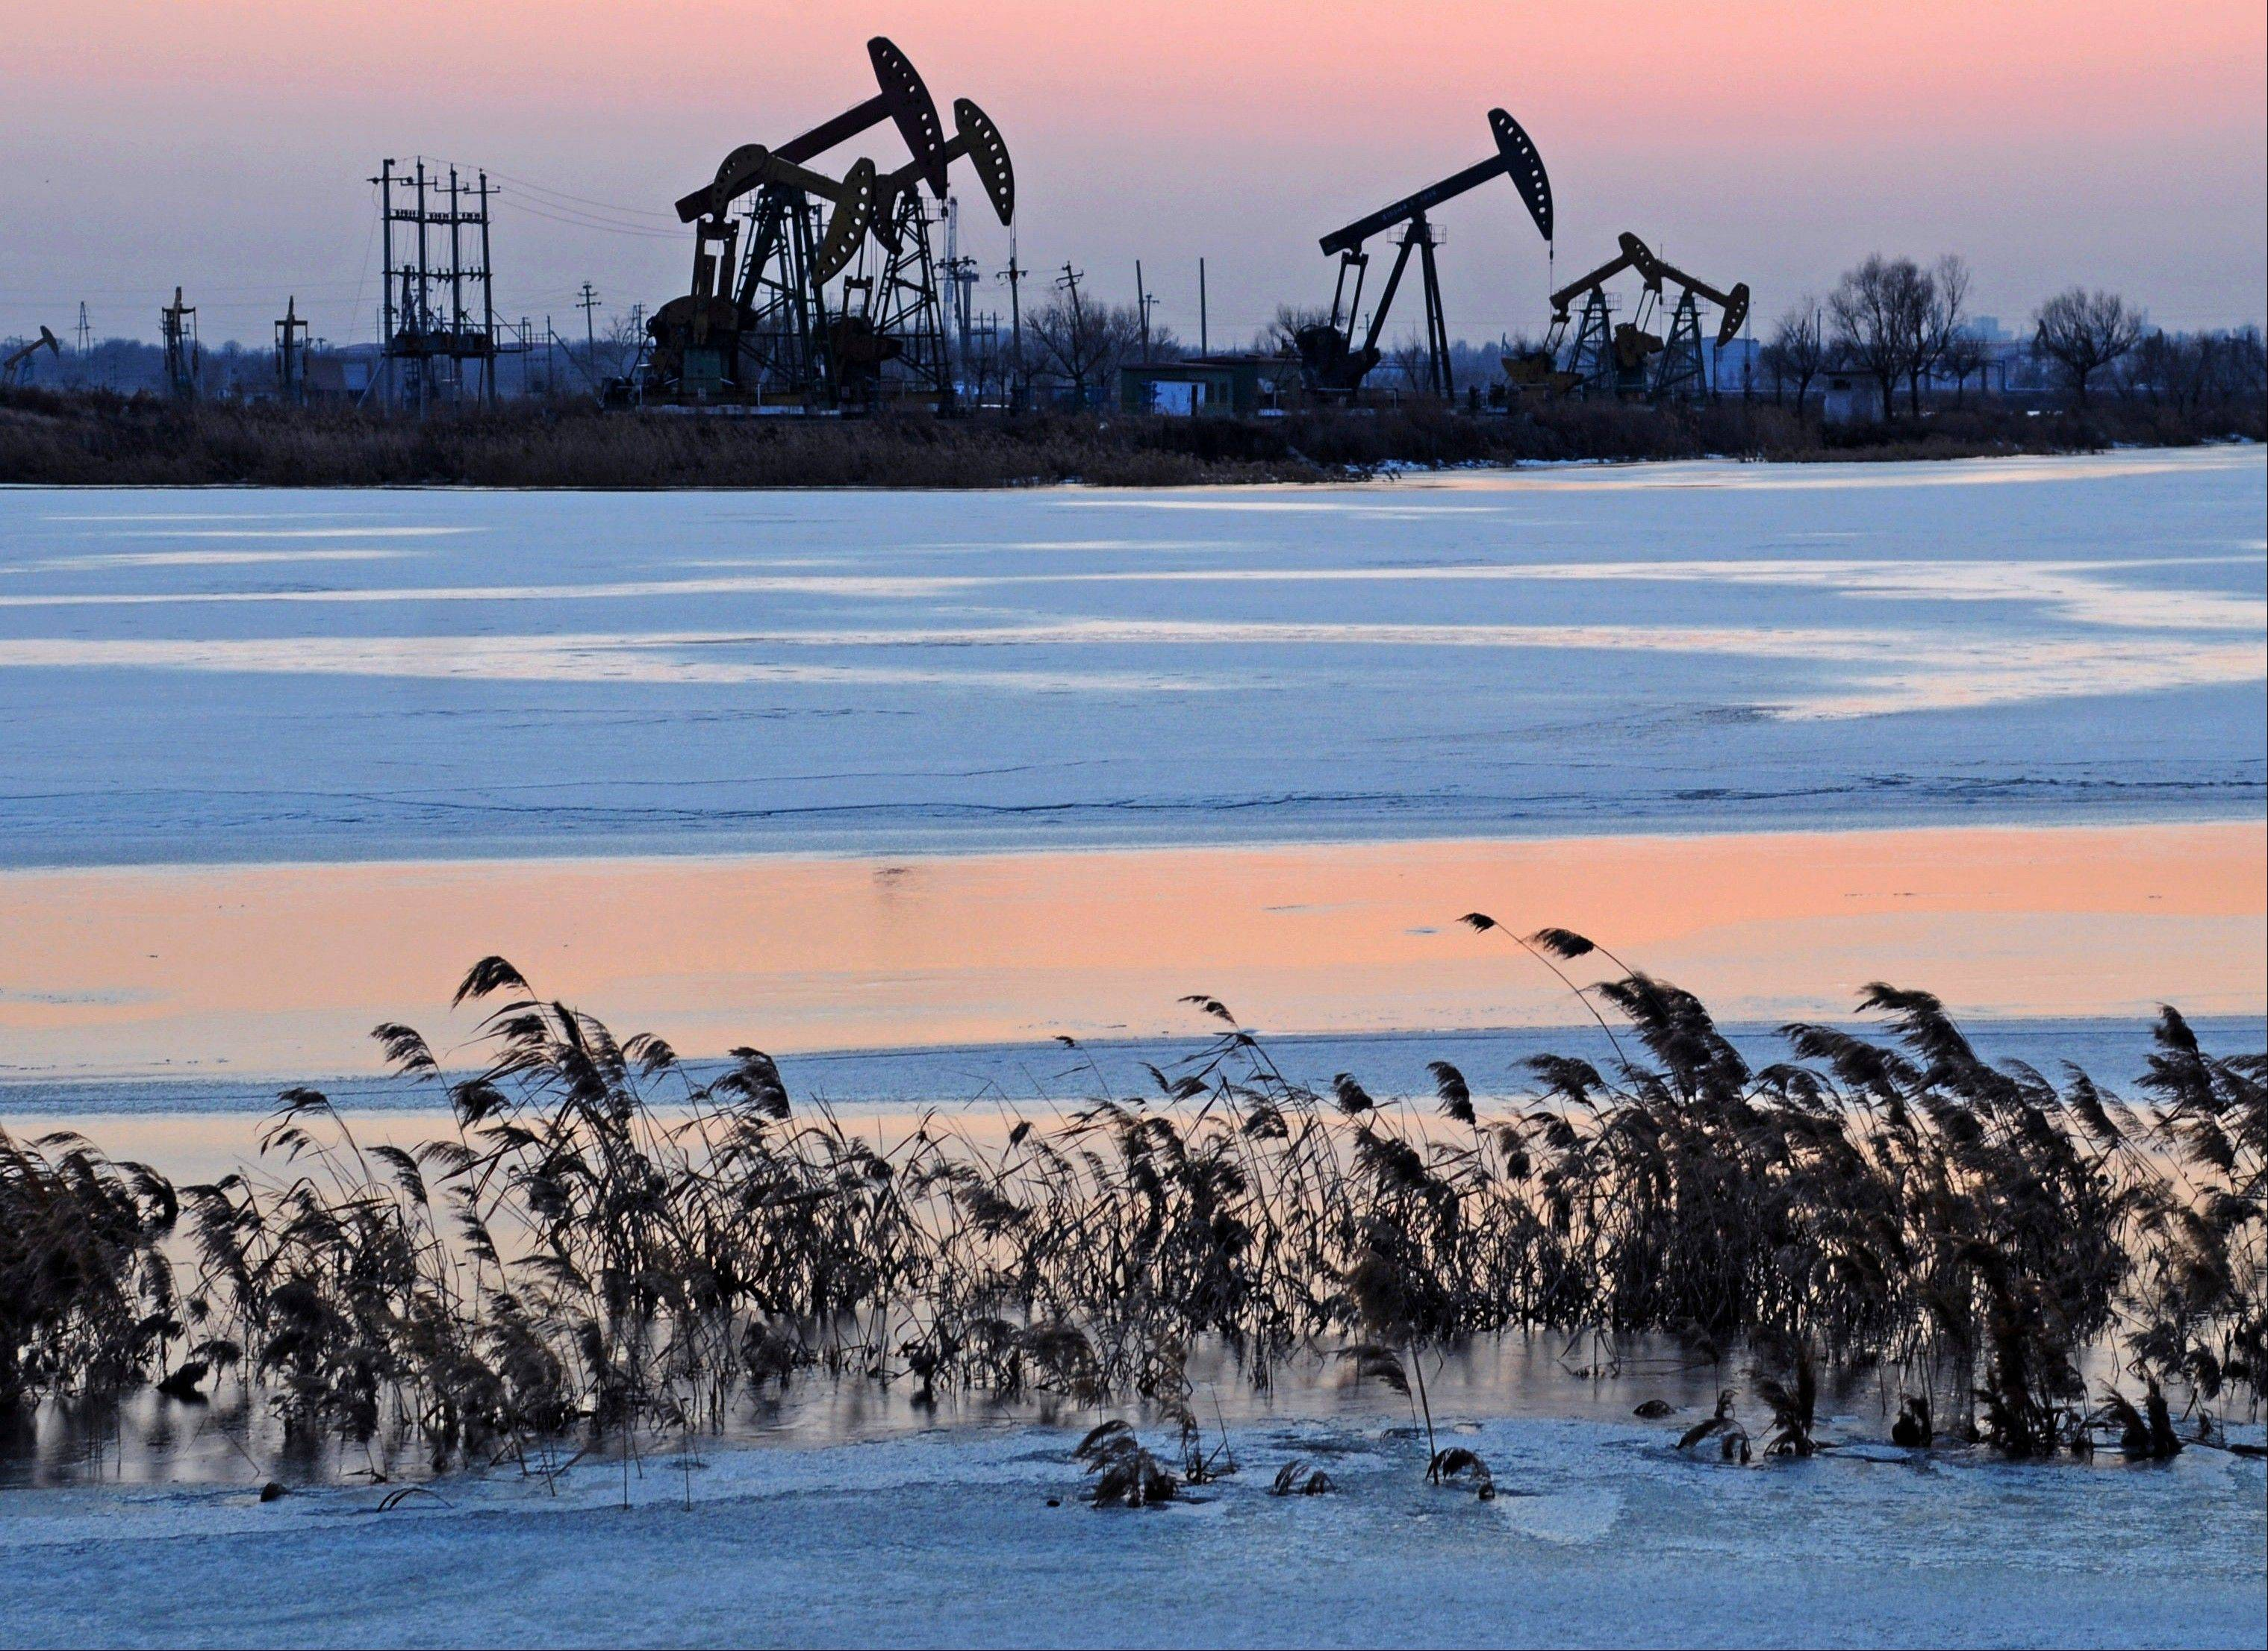 Oil rigs belonging to PetroChina are seen near the banks of a snow covered lake in Daqing in northeastern China's Heilongjiang province earlier this year.